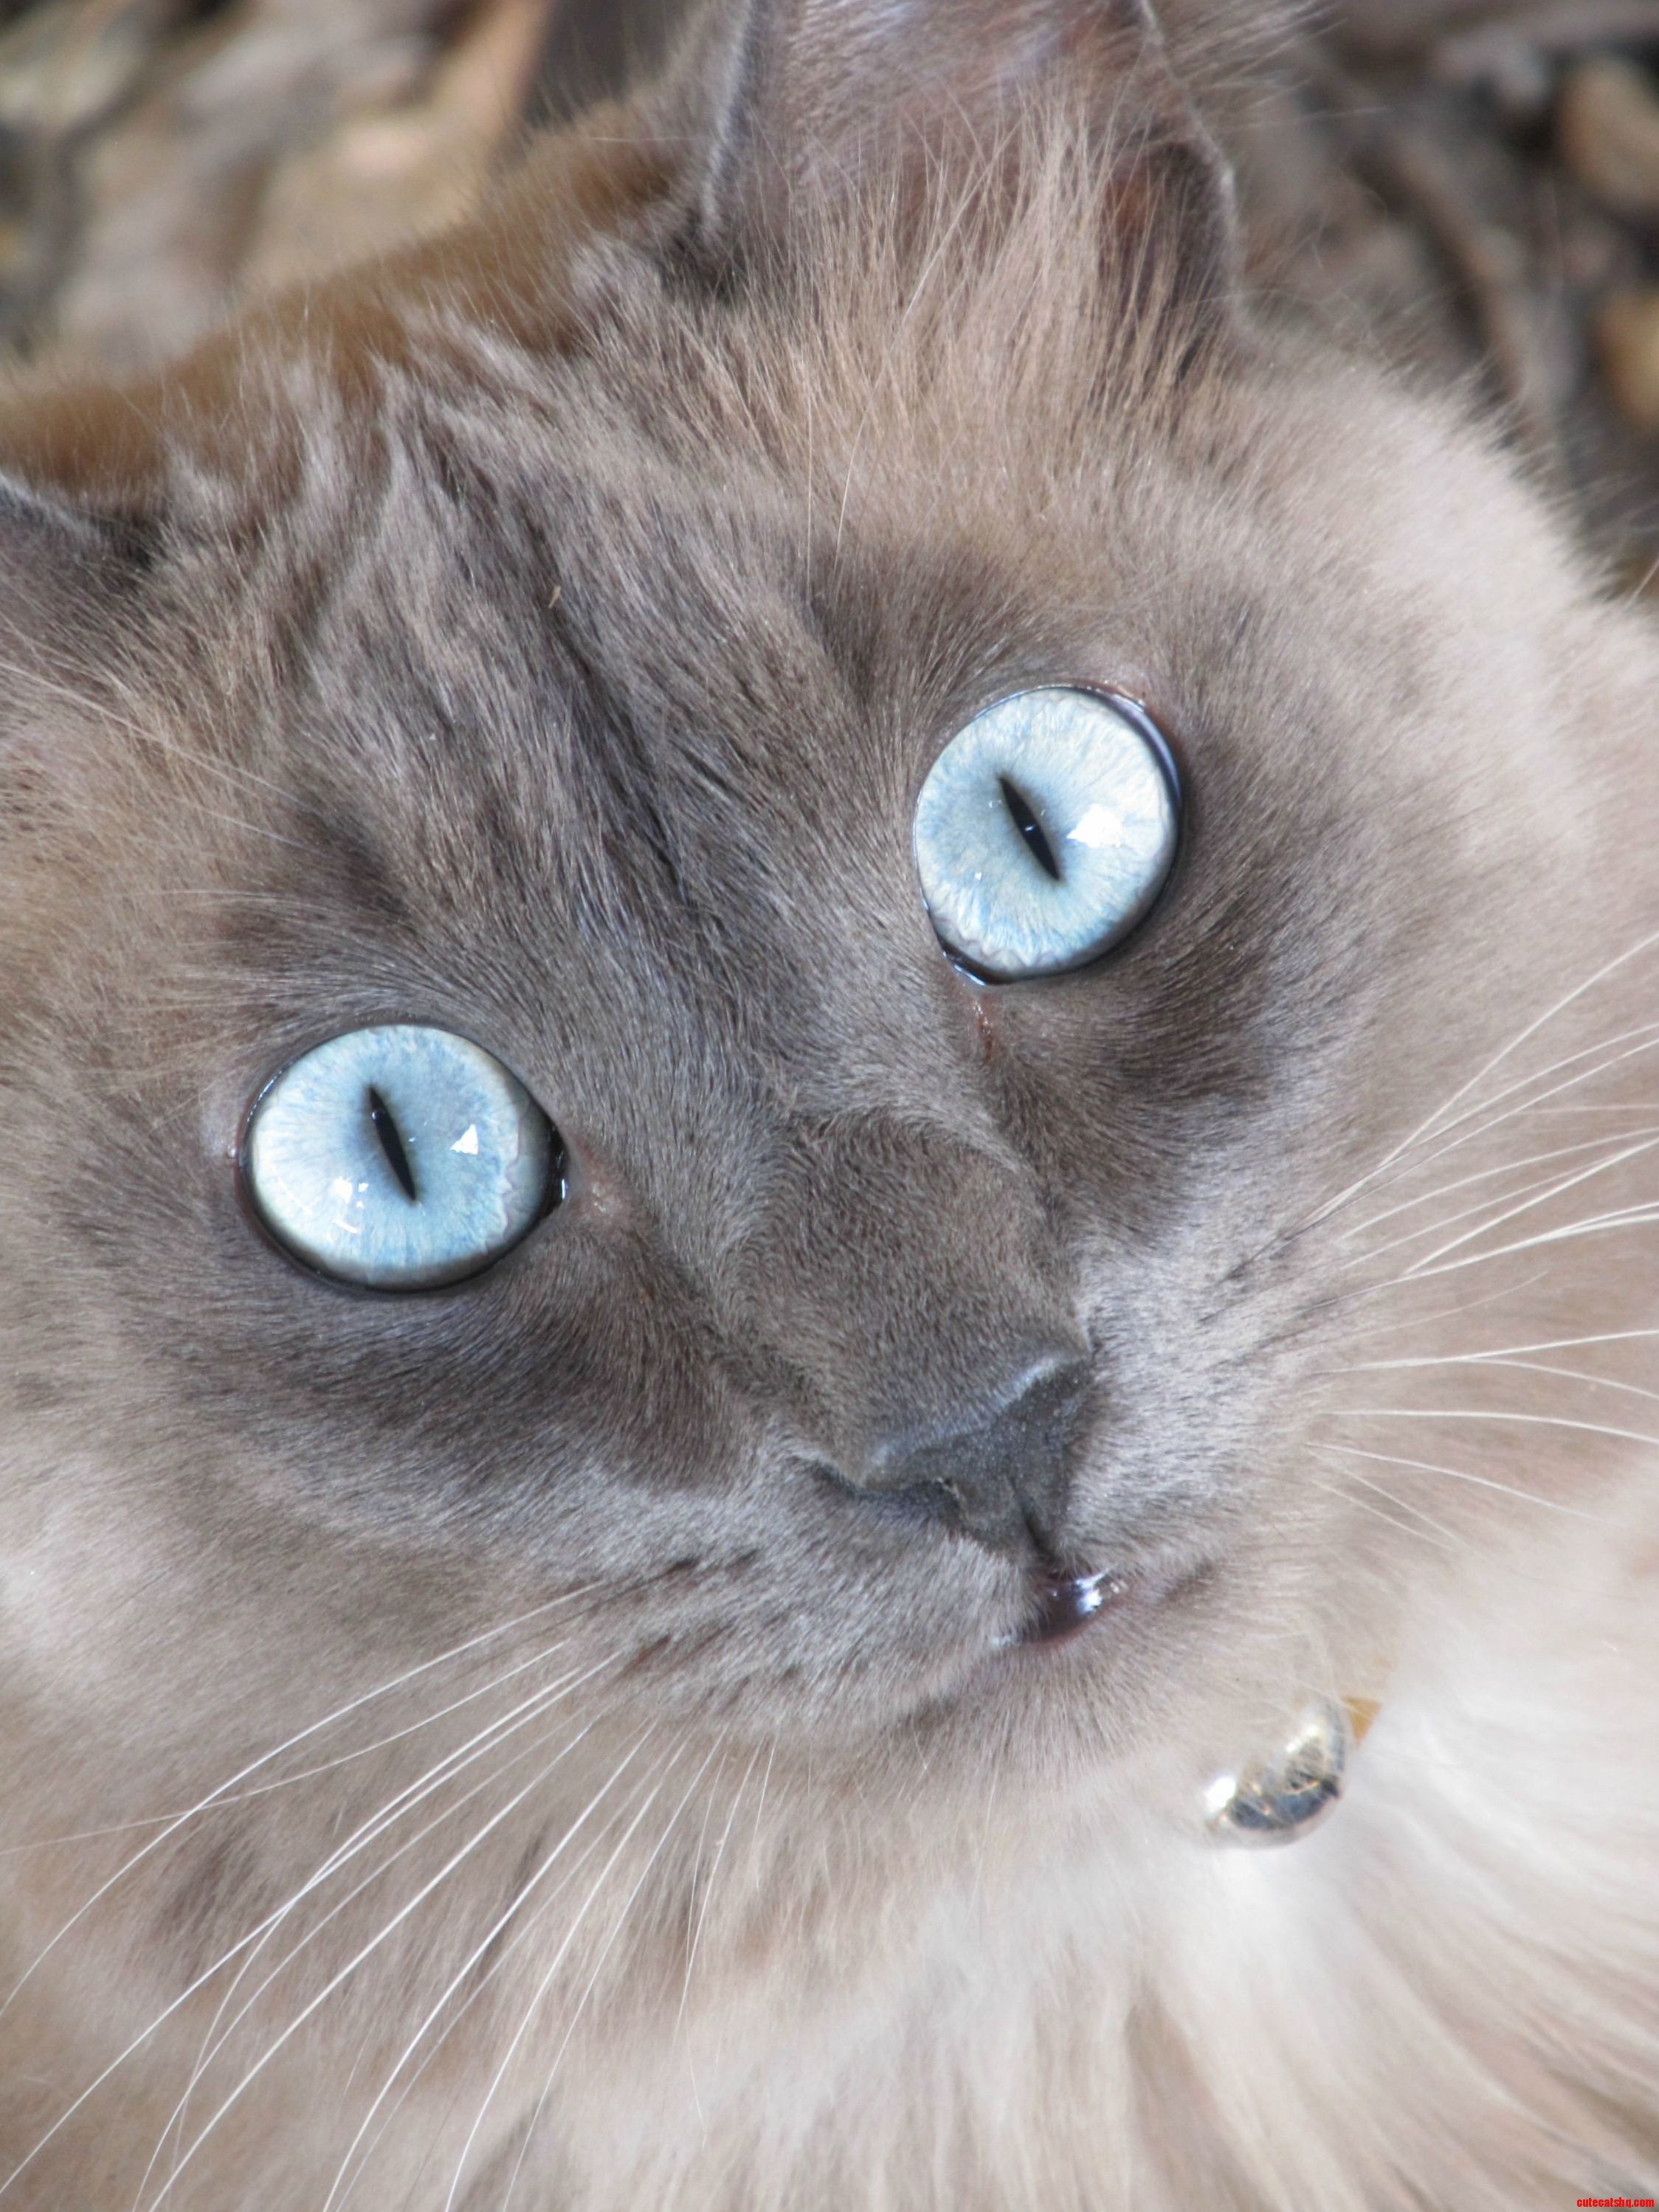 Captivating image of my lil boys baby blues.